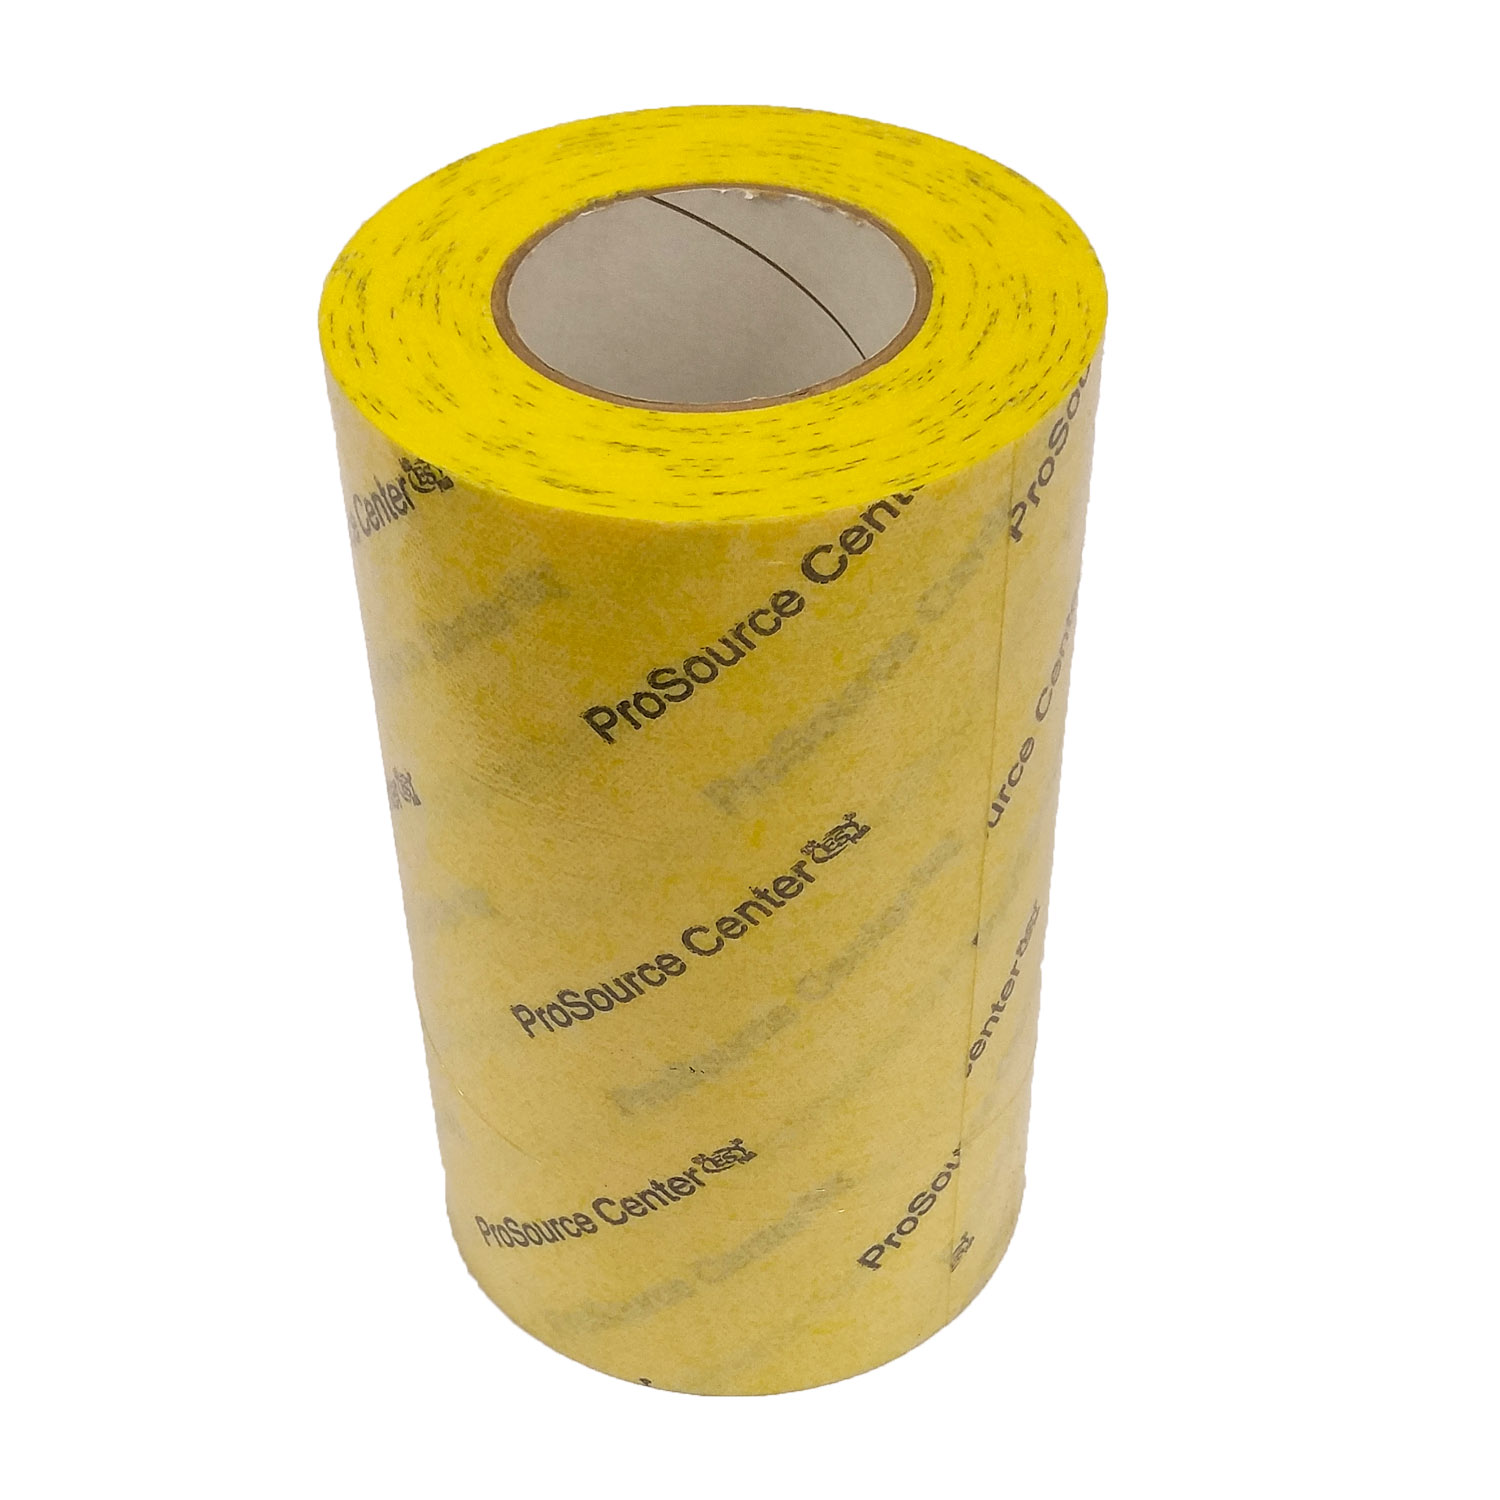 PSC Pro WP Waterproofing Seam Strips 10 Inch 98 5 Foot Roll by Pro-Source Center